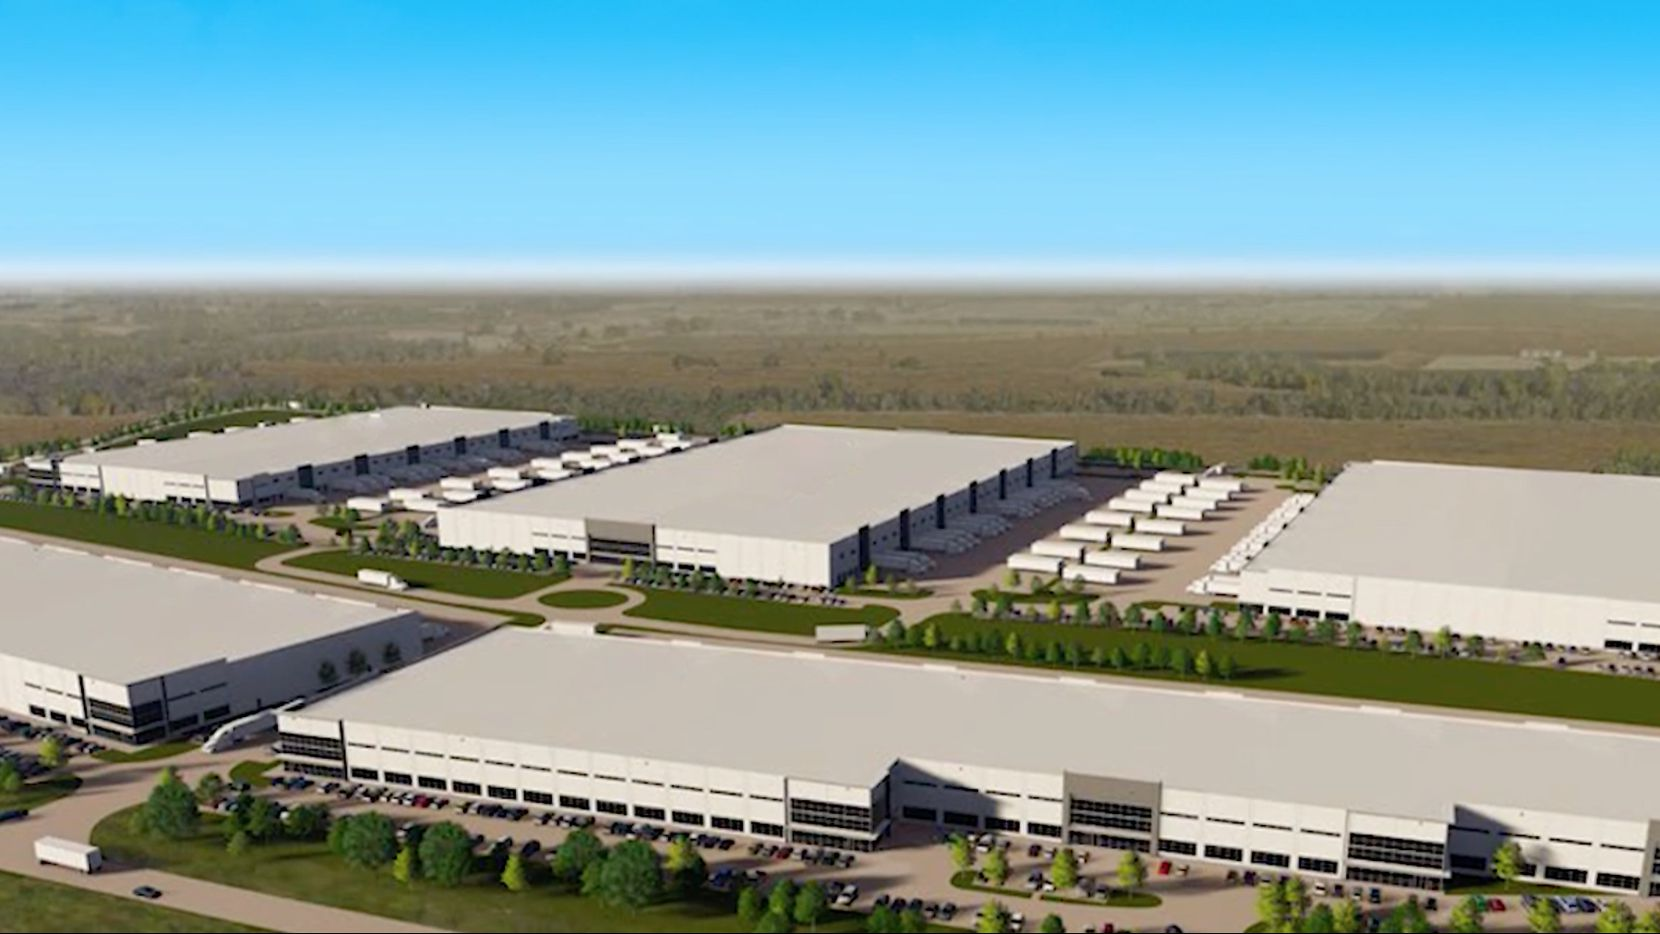 Legendzway Distribution has leased a building in the Gateway Logistics Center at the south end of DFW Airport.